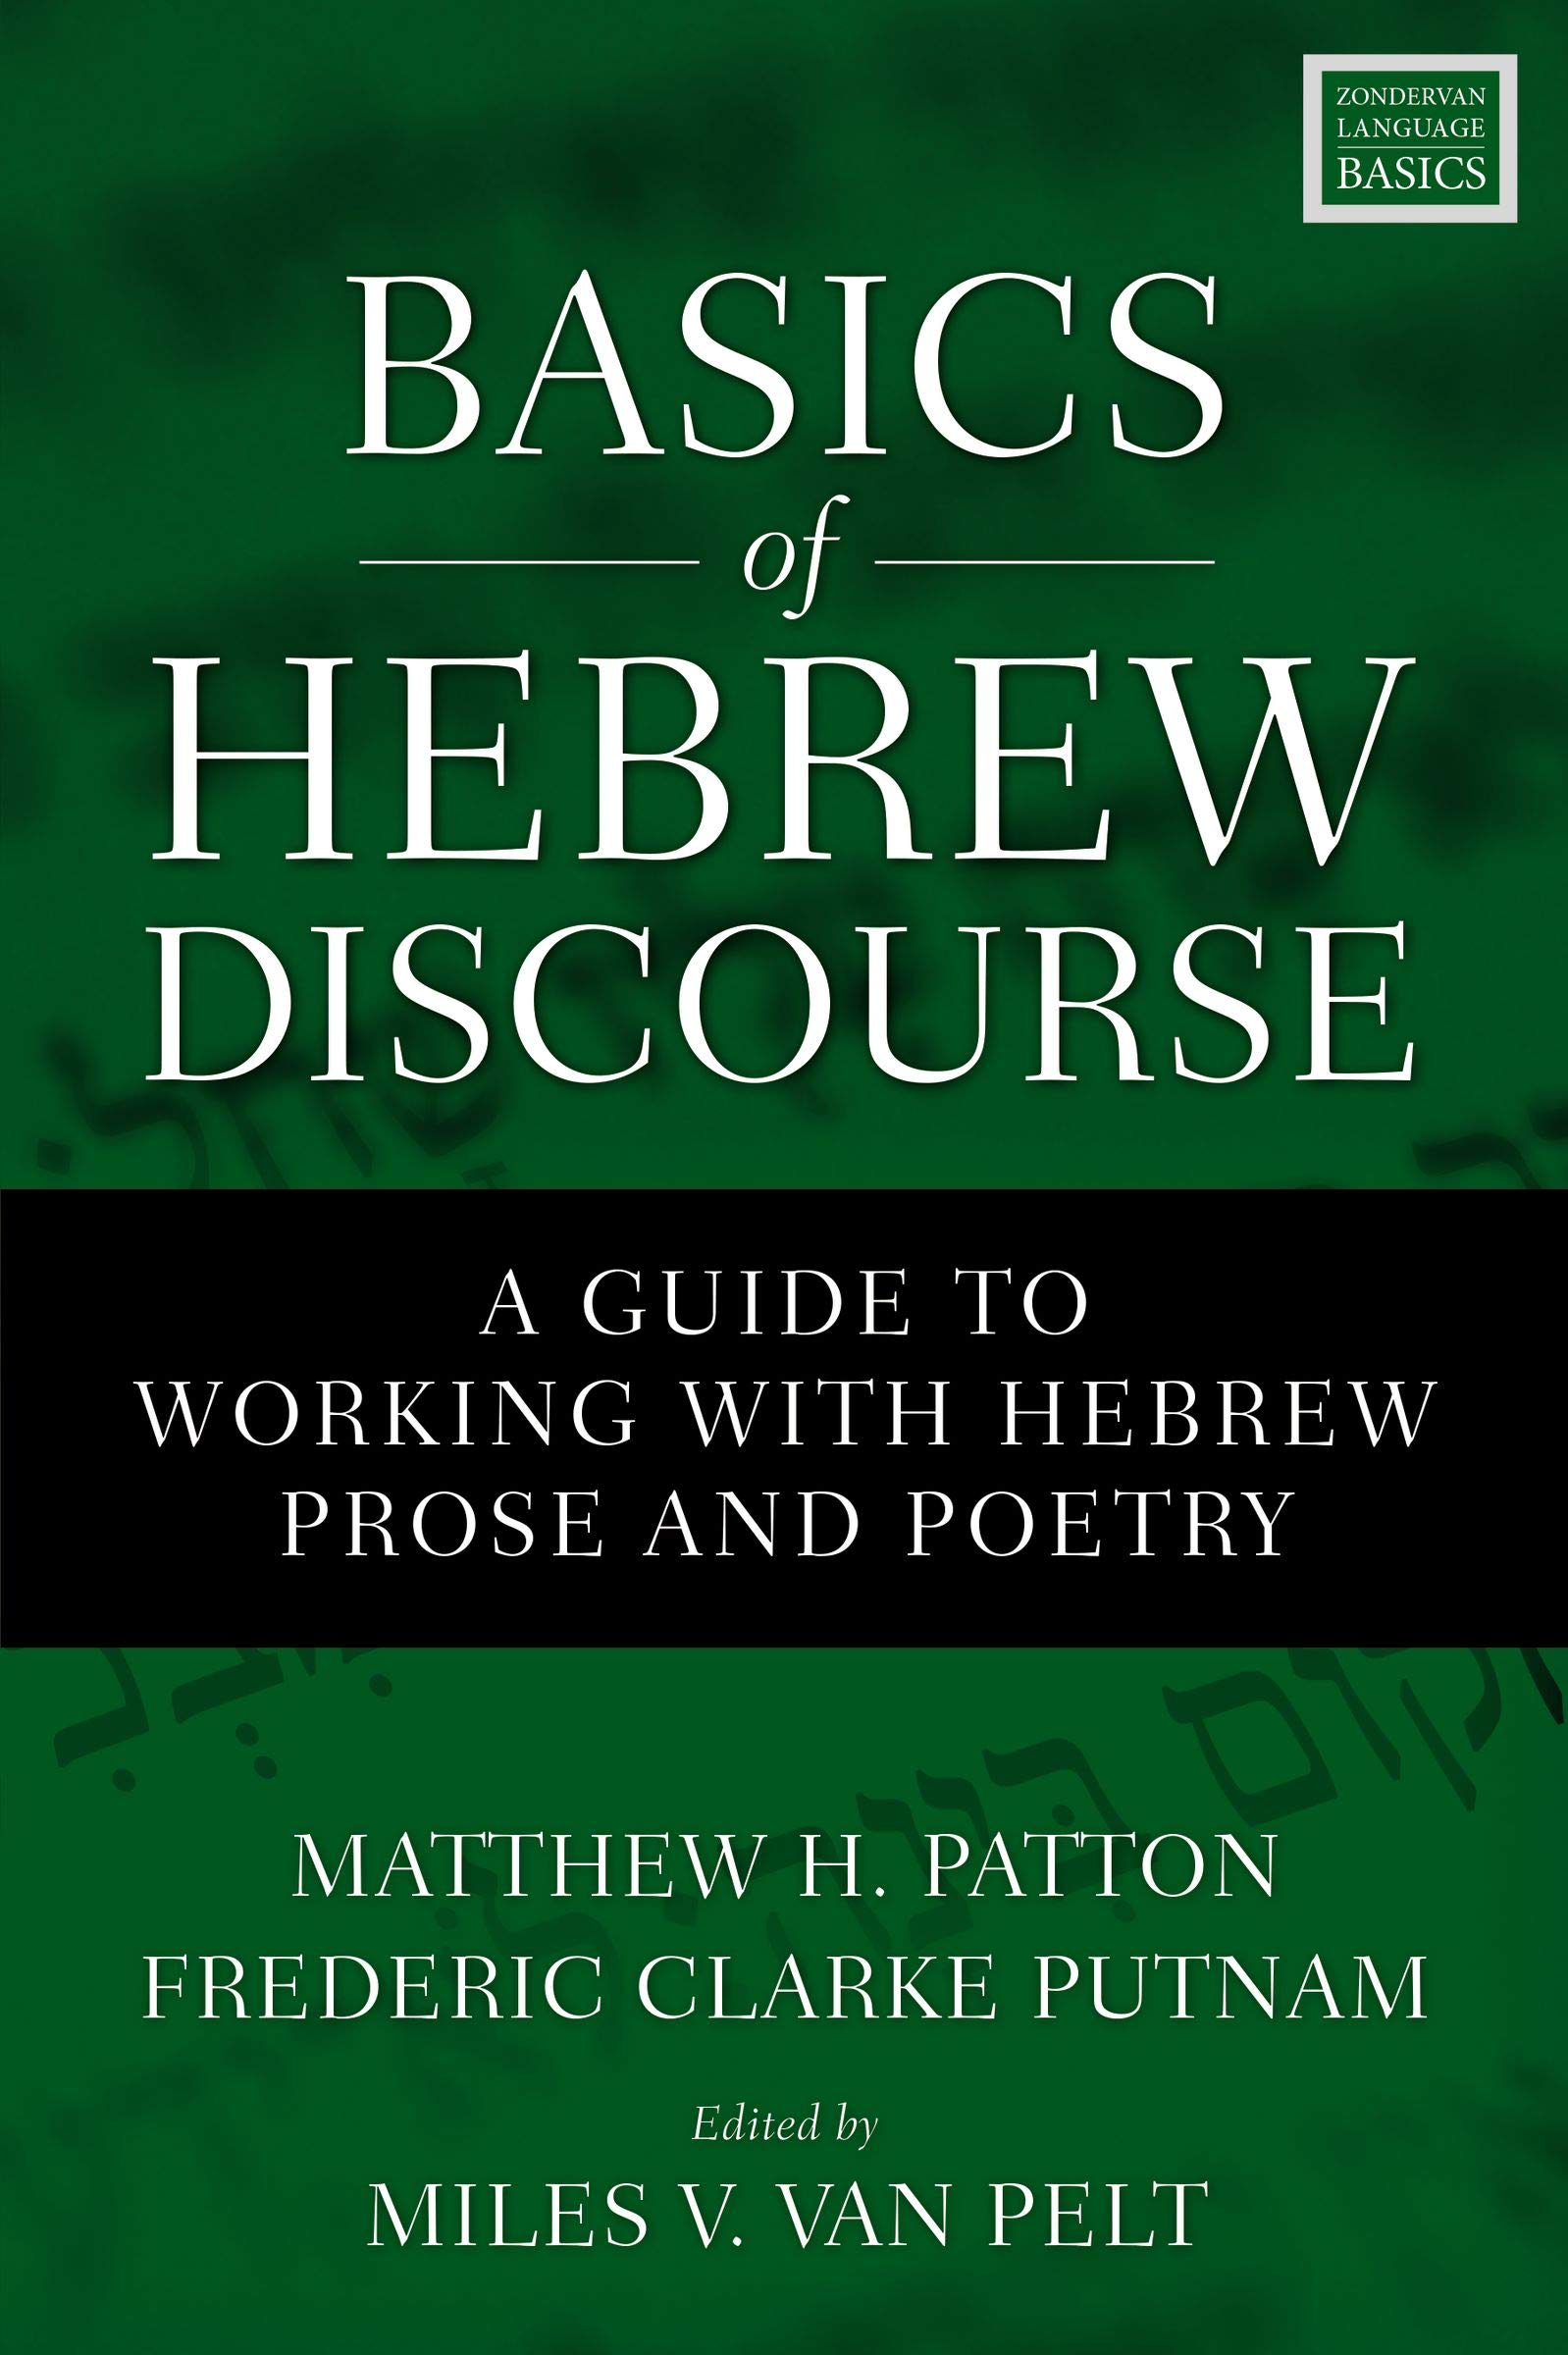 Basics Of Hebrew Discourse  A Guide To Working With Hebrew Prose And Poetry